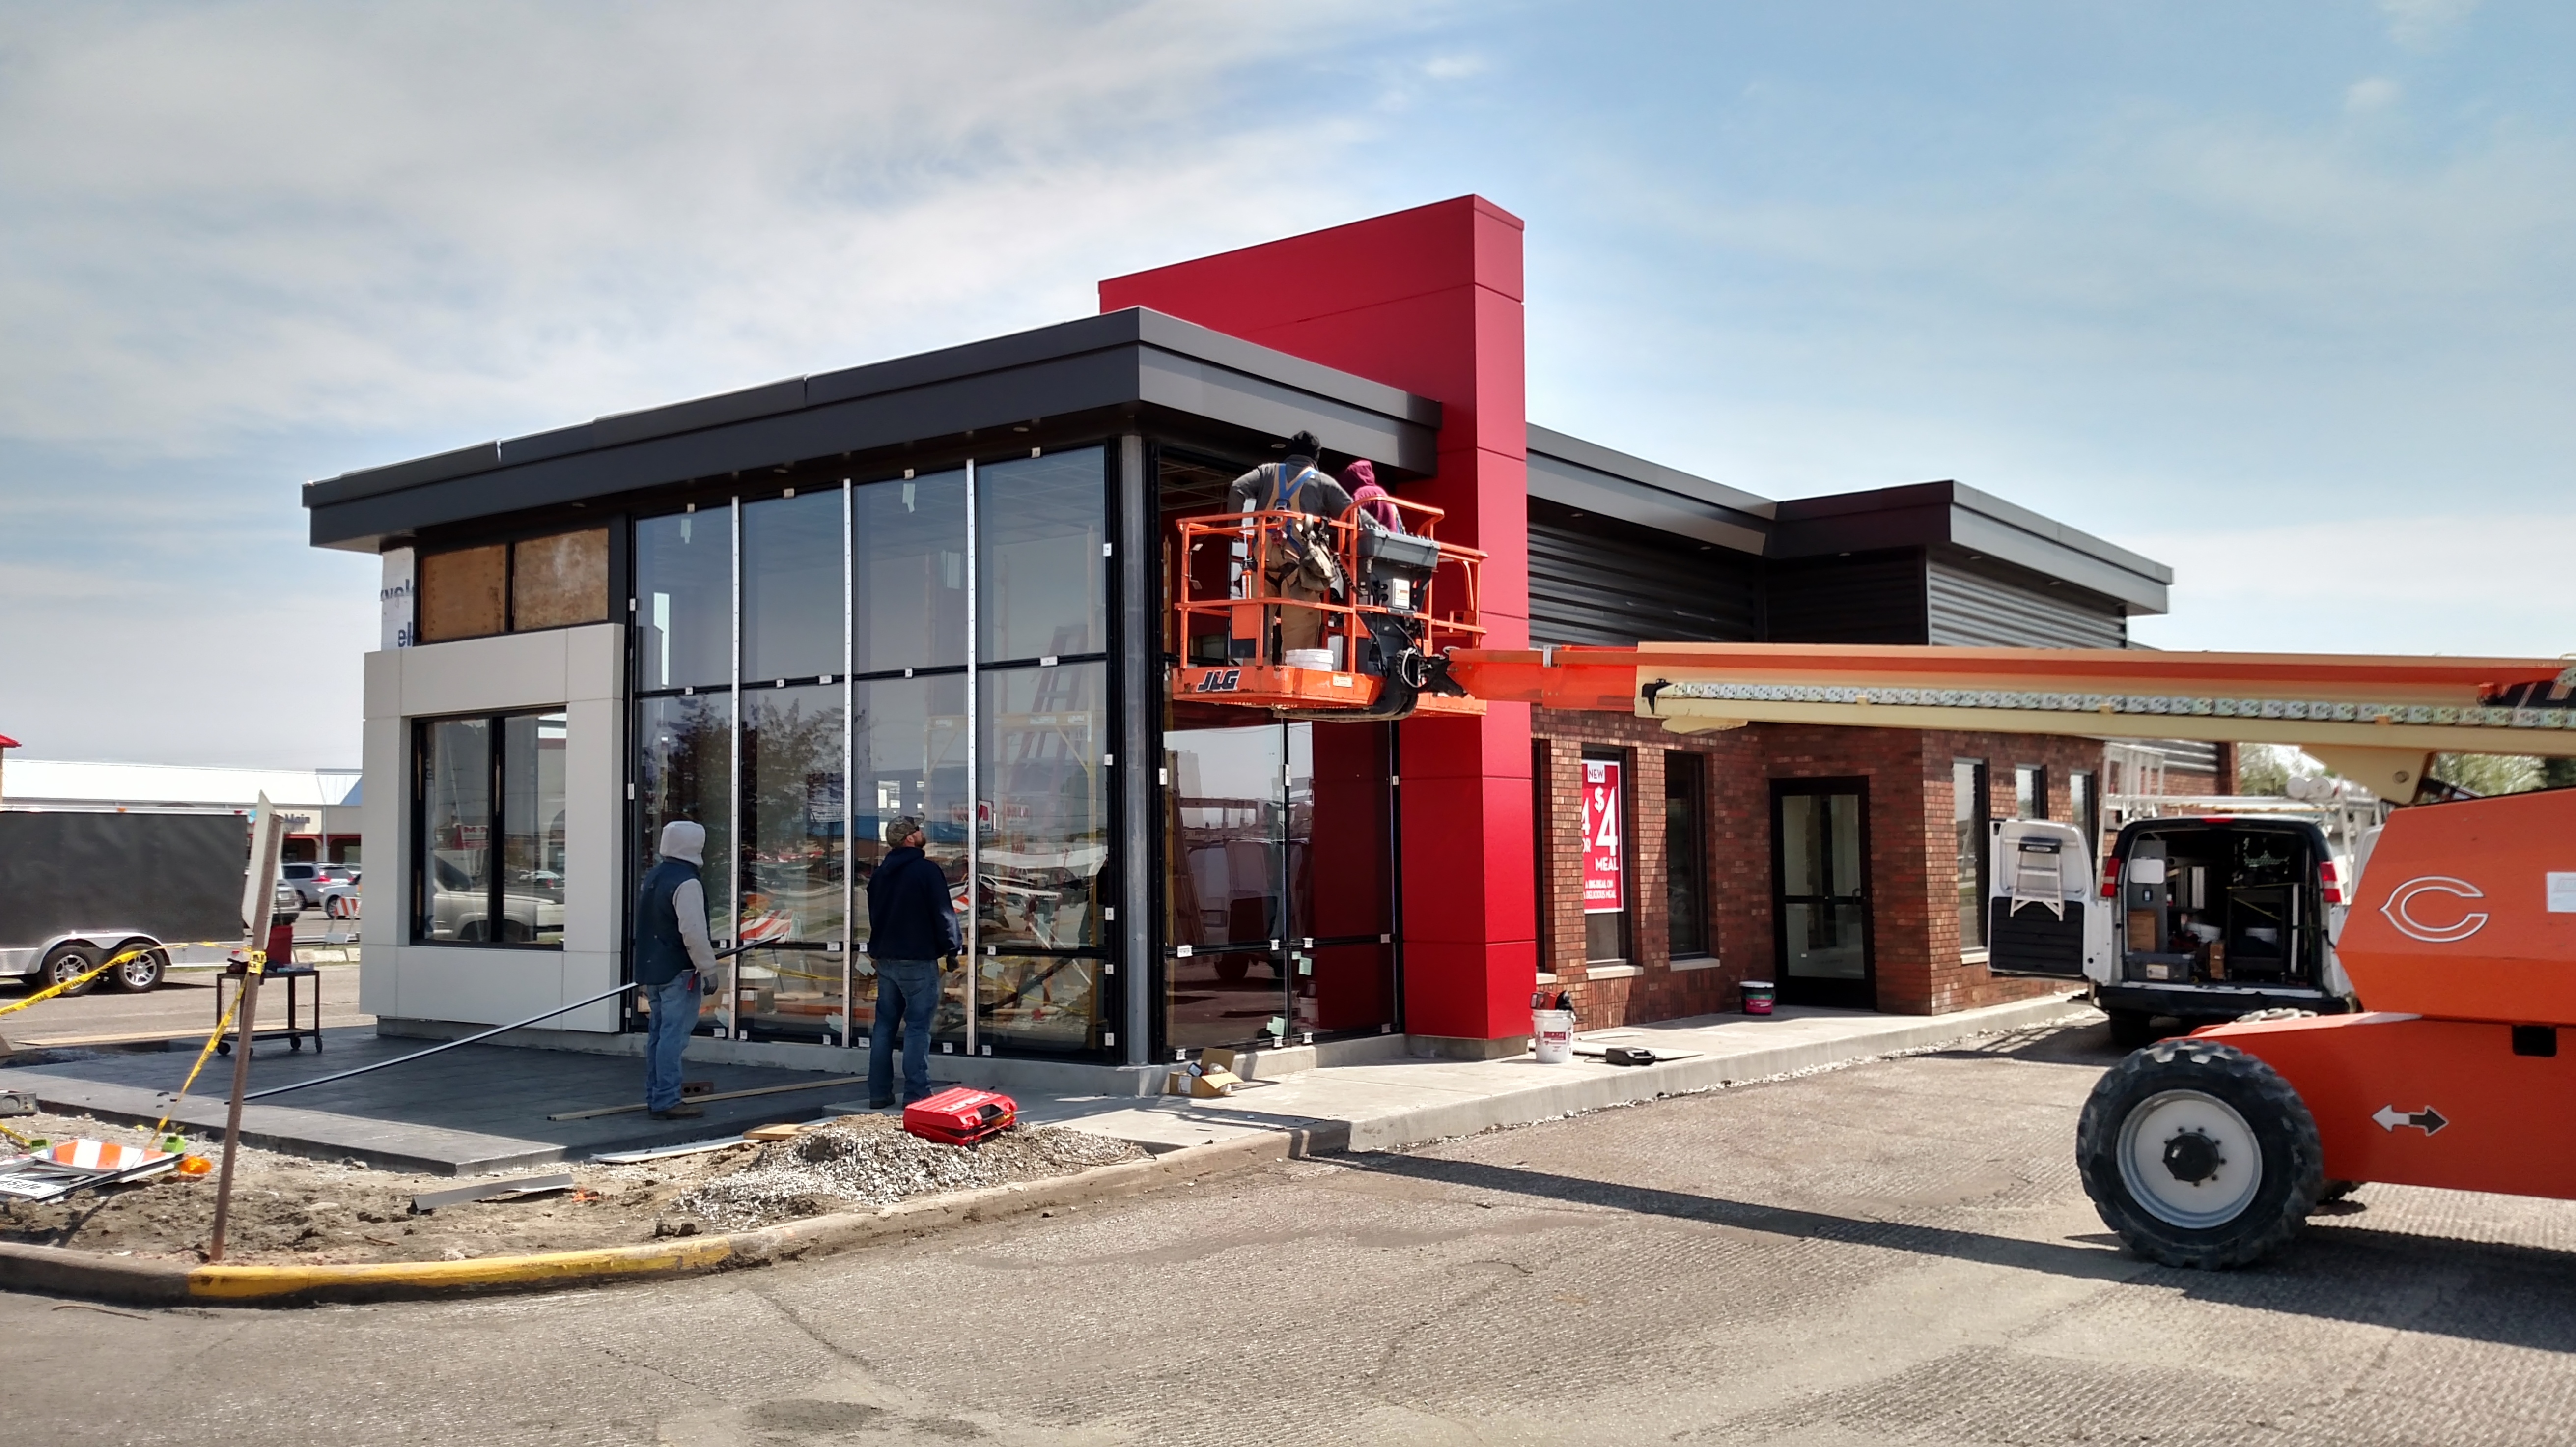 Wendy 39 s renovation merrillville in ccs image group - National express head office number ...